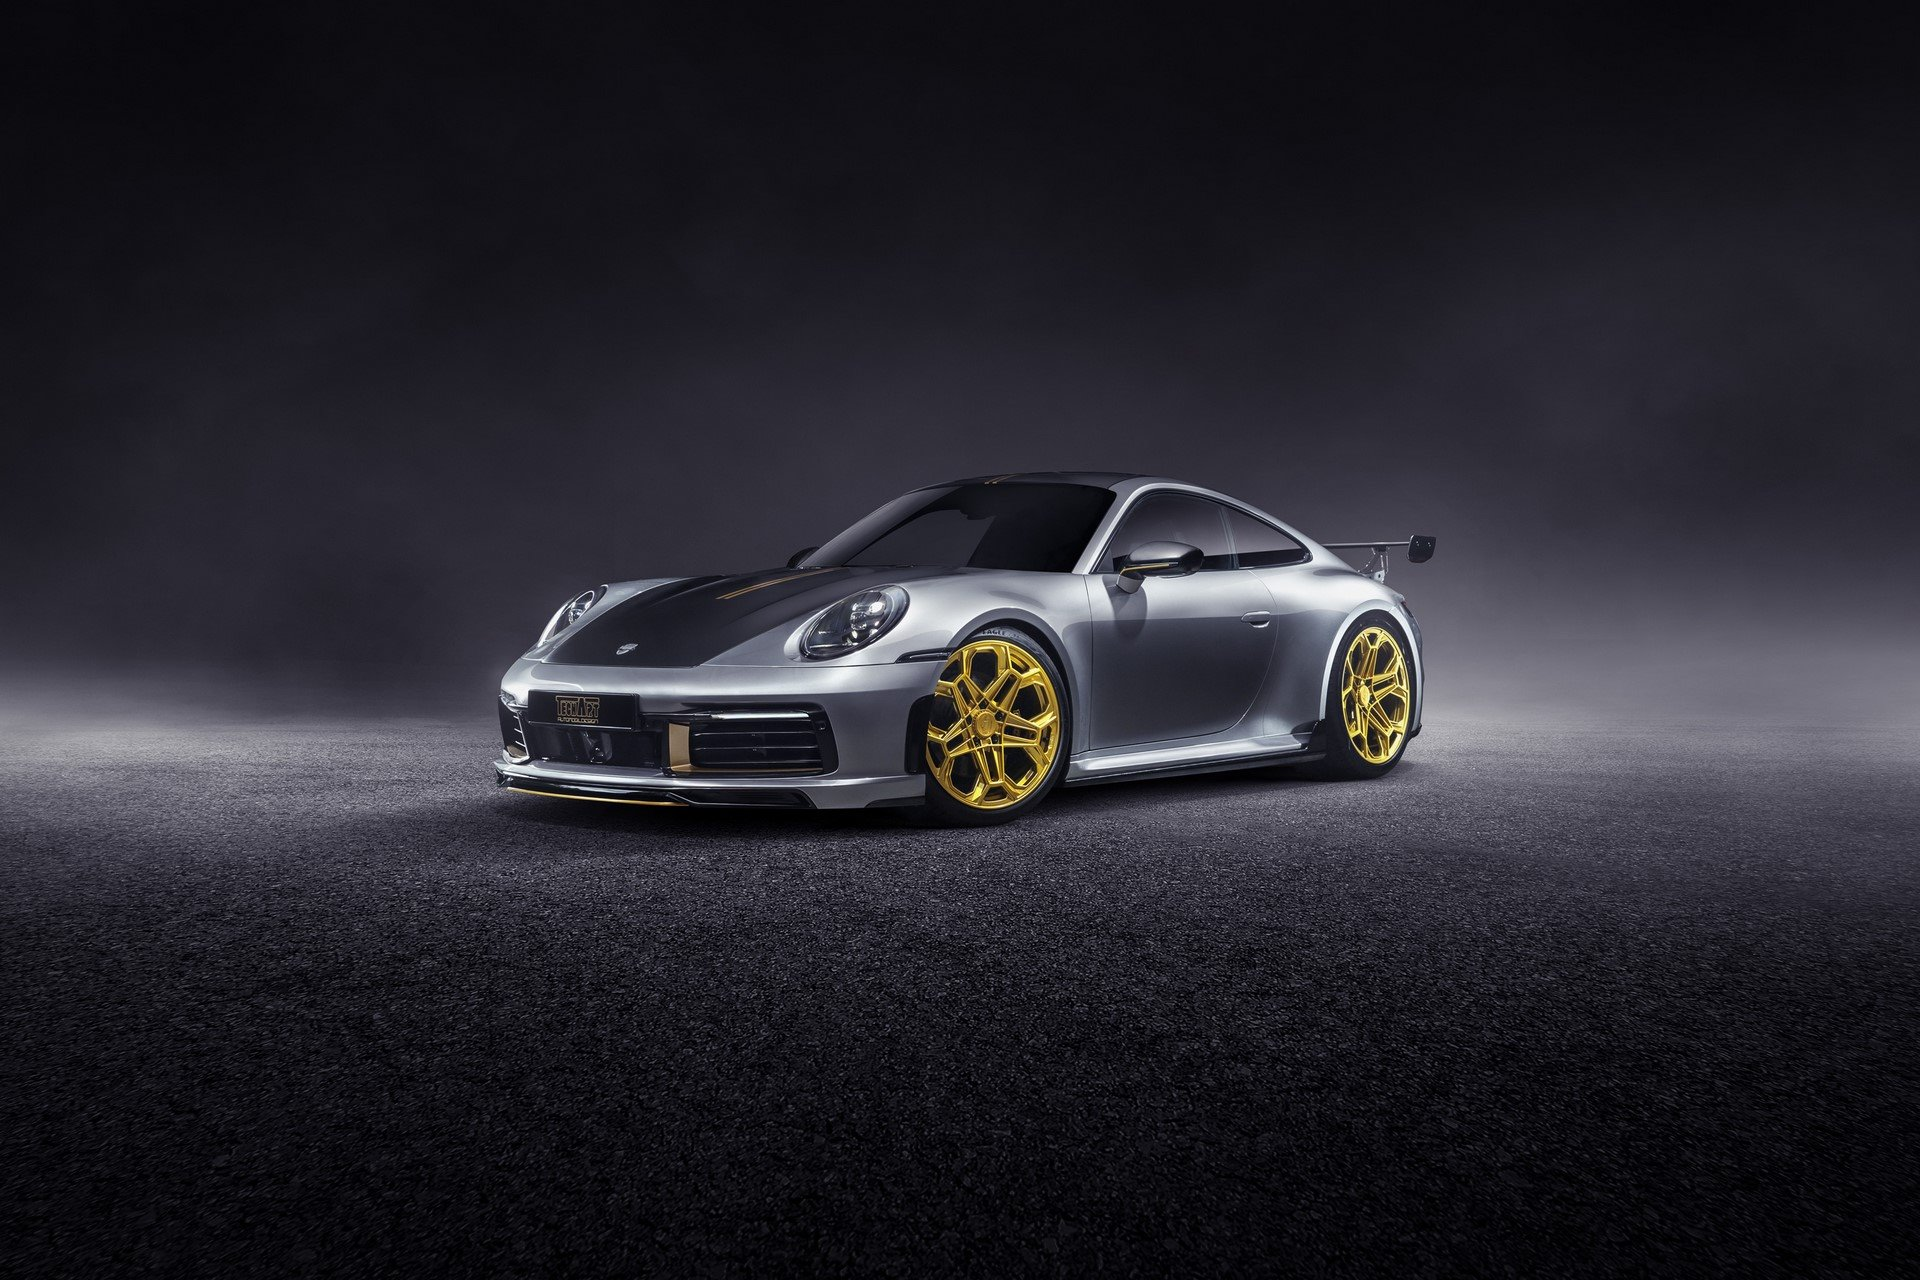 Porsche-911-Carrera-4S-by-TechArt-6